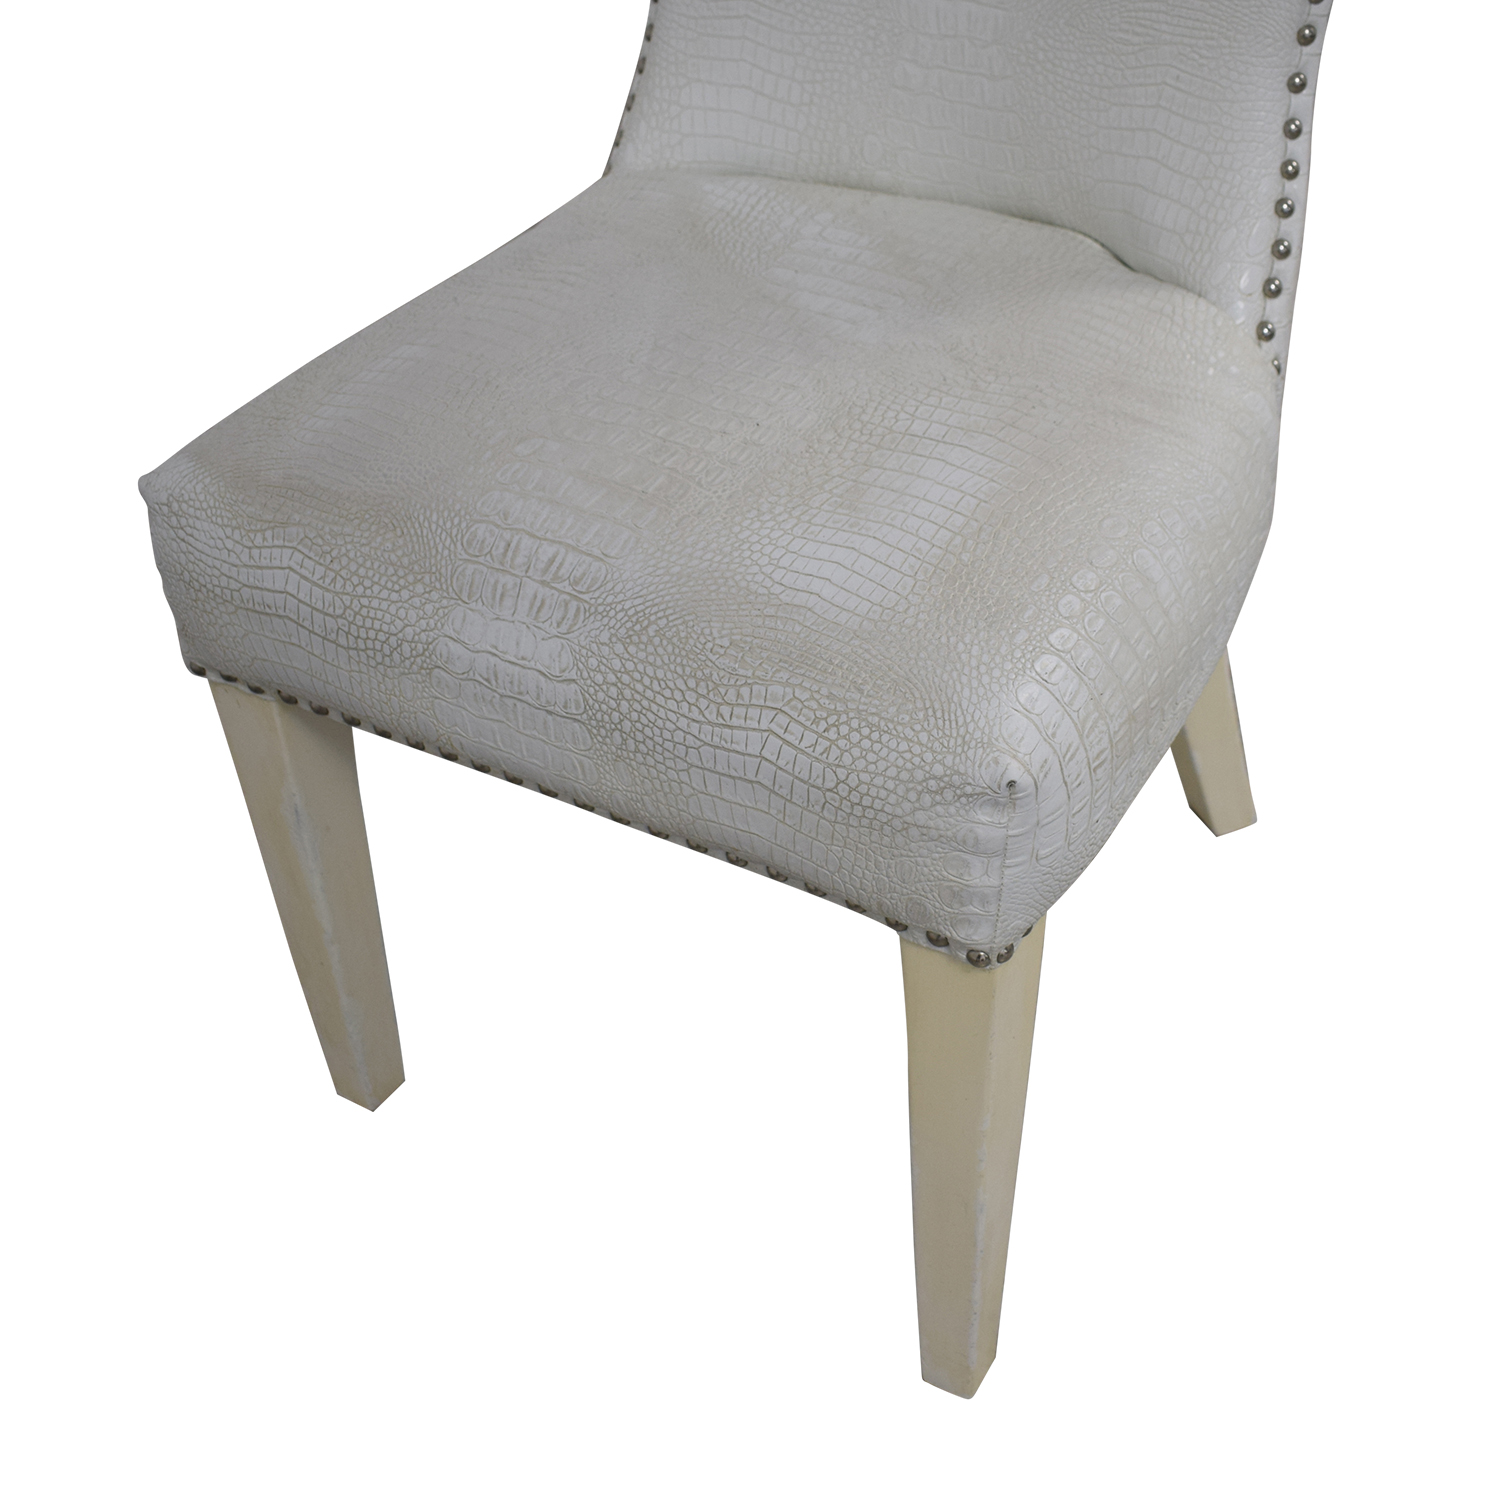 Shine by S.H.O Shine by S.H.O. Verona Chair on sale